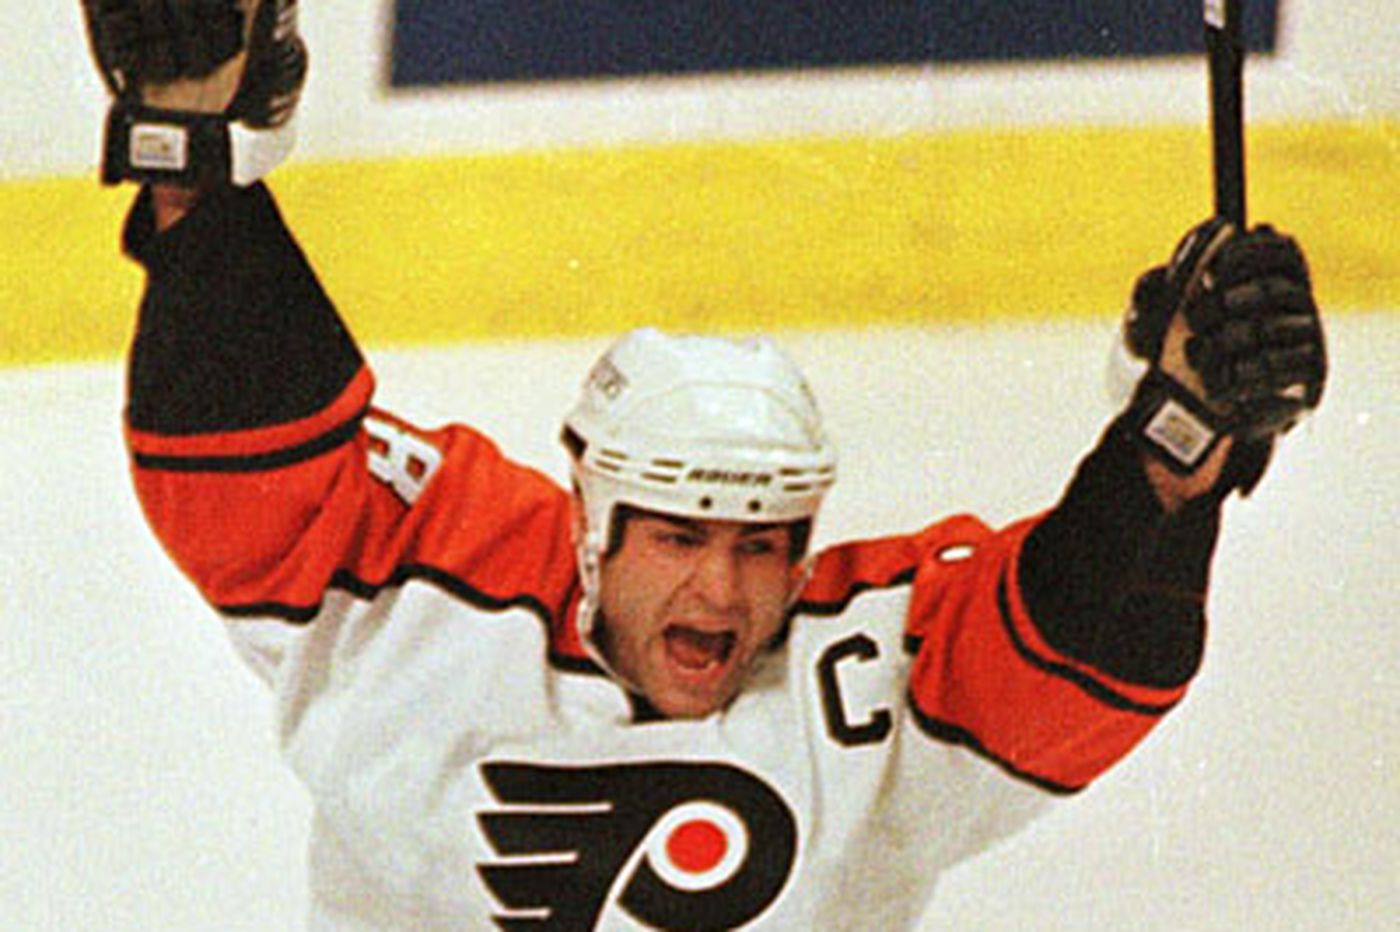 Past is past for former Flyer Lindros